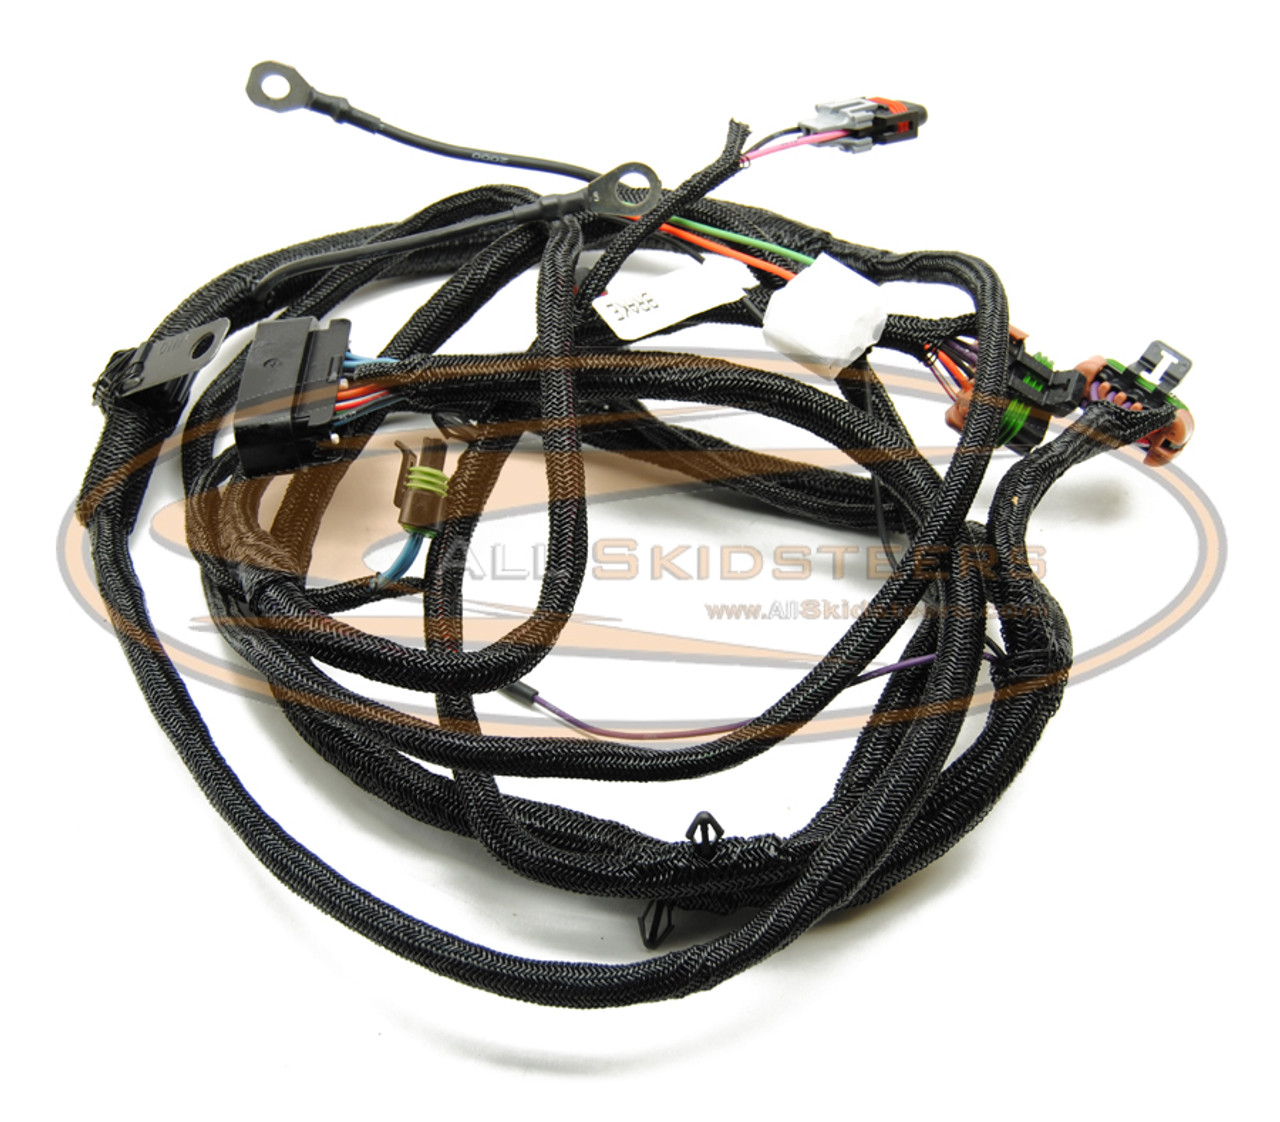 hight resolution of cab wiring harness standard for bobcat skid steer replacescab wiring harness standard